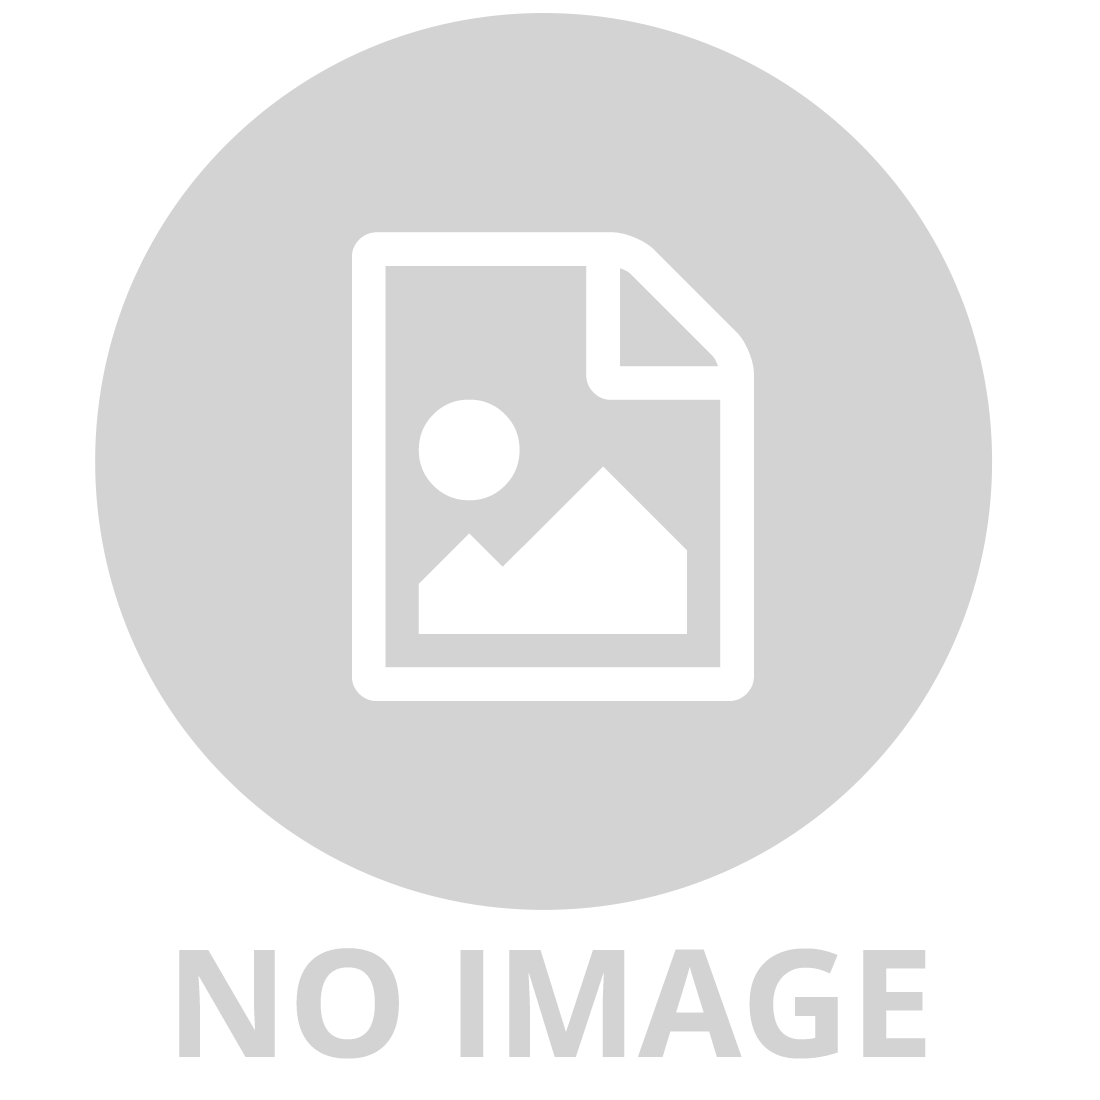 DIE-CAST VW KOMBI WITH SURFBOARD